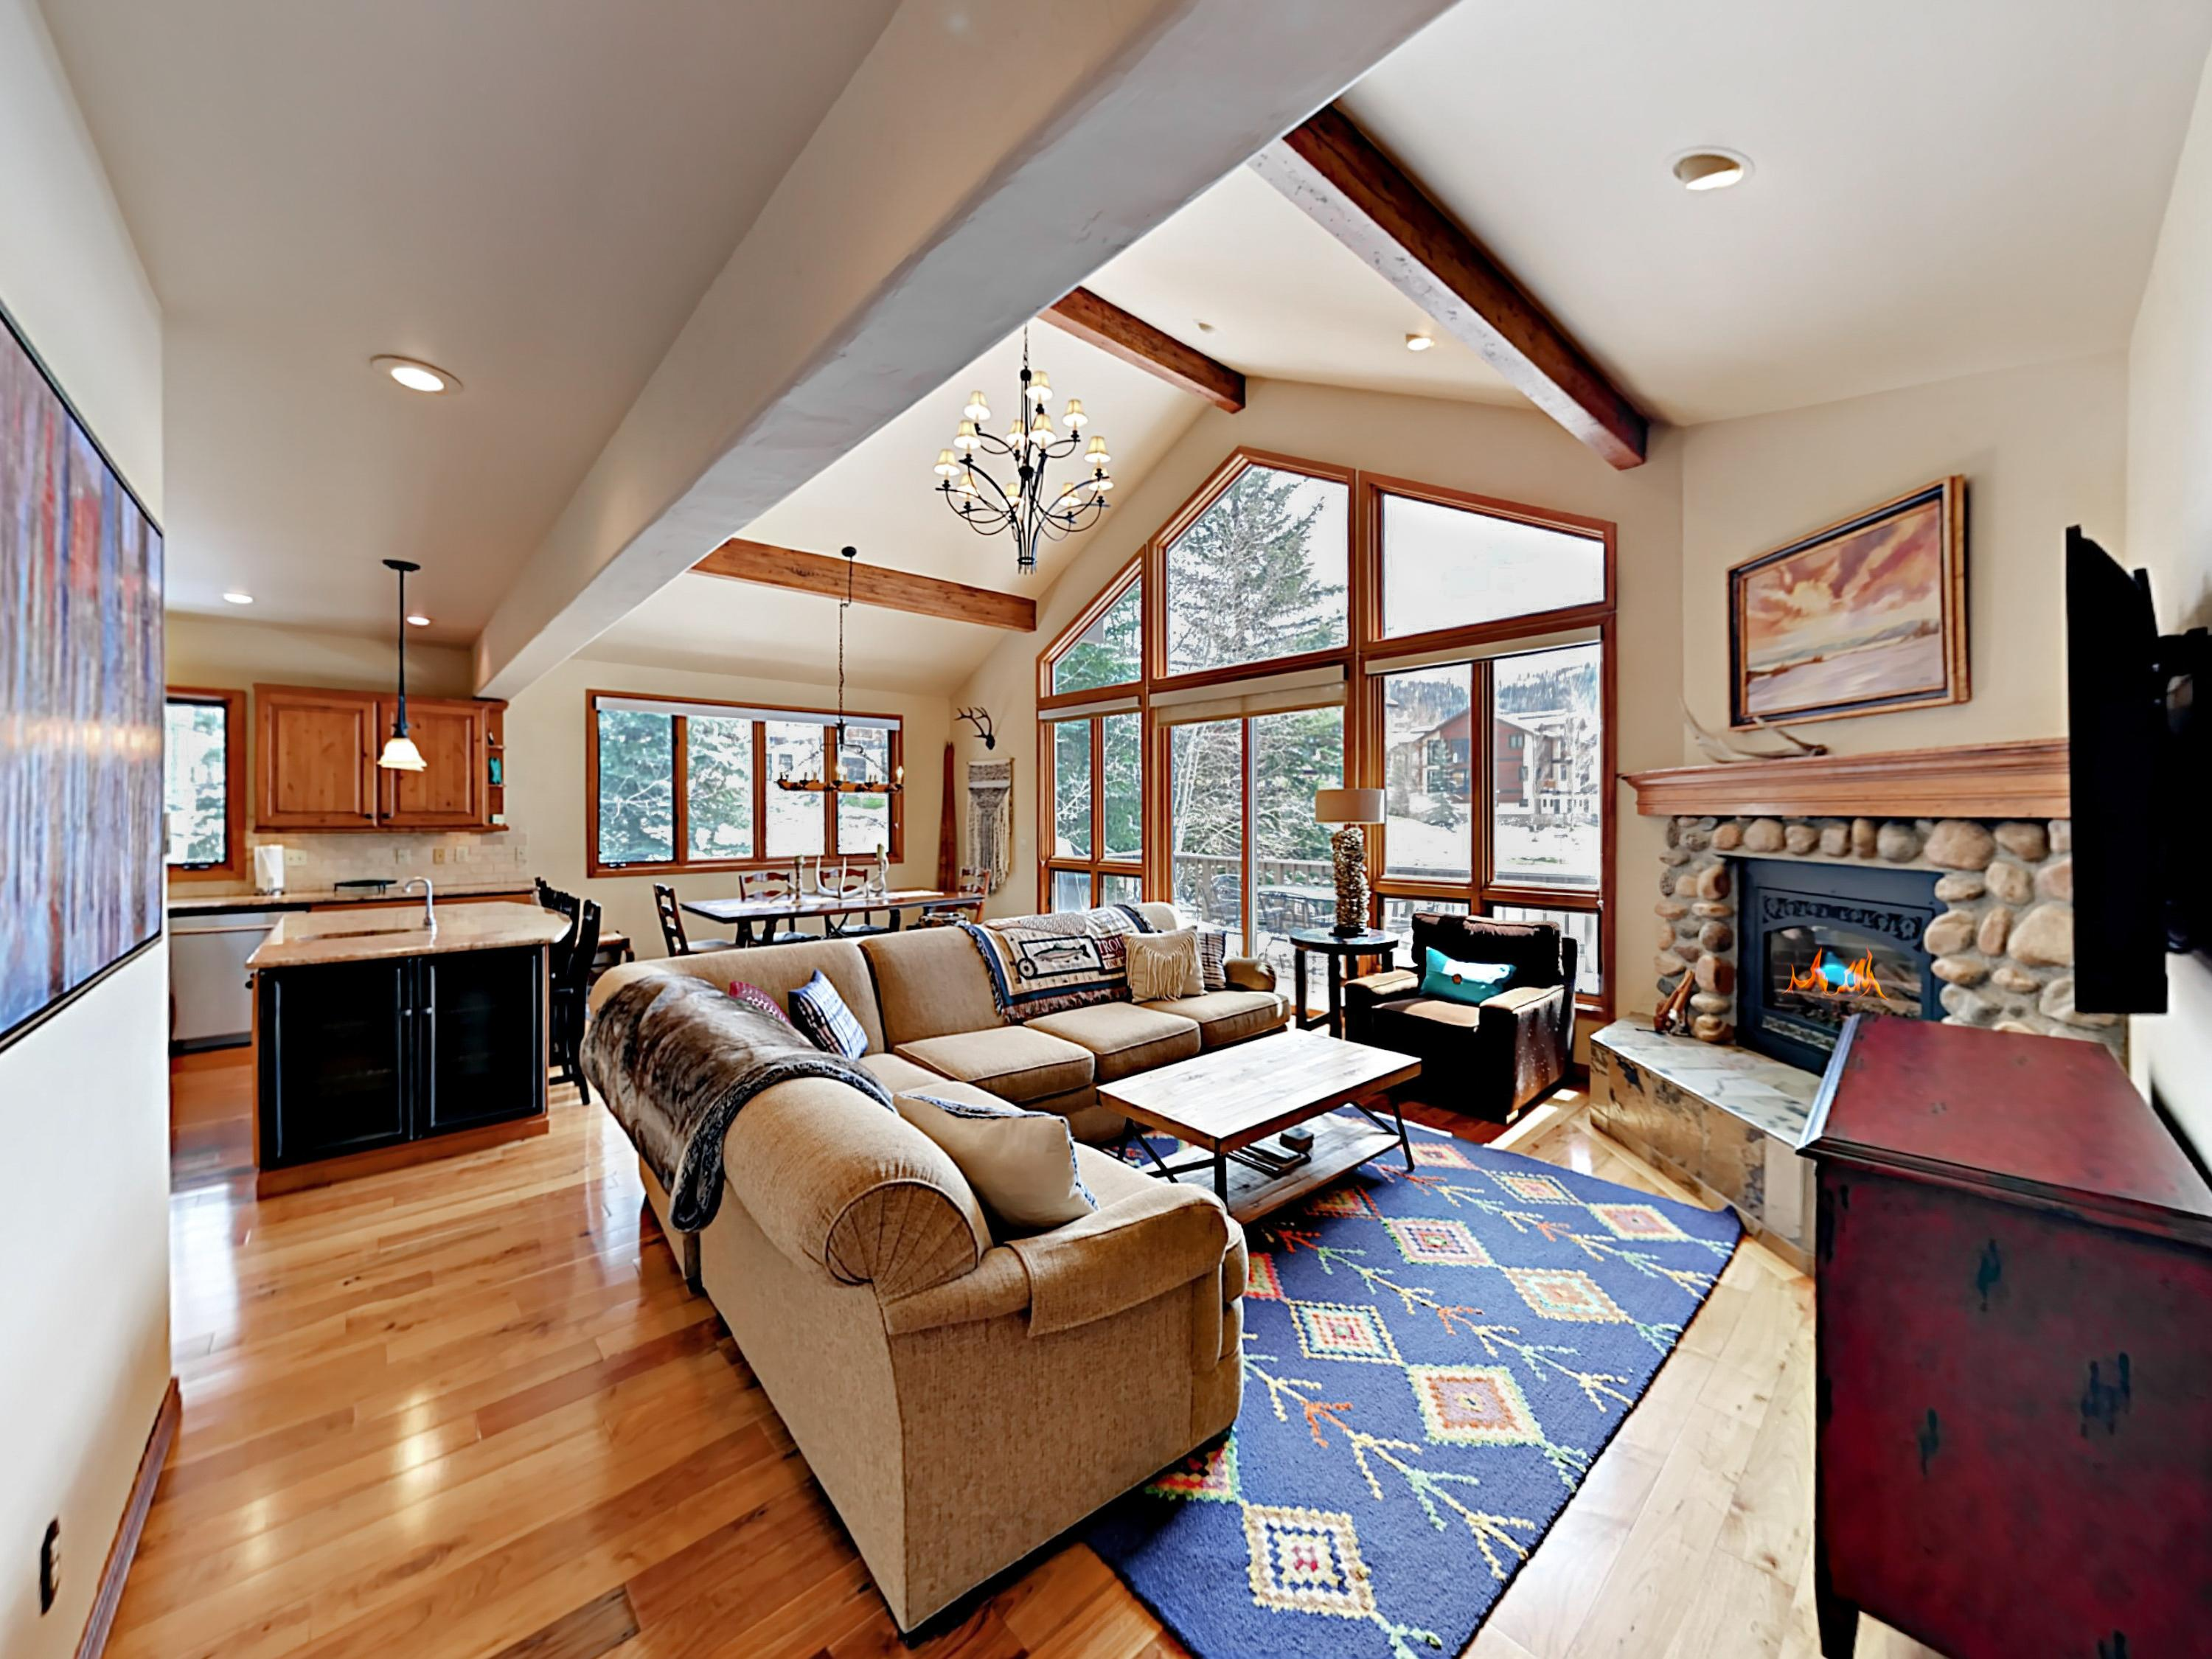 In the living room, natural light pours through floor-to-ceiling picture windows and glass doors leads to the patio.